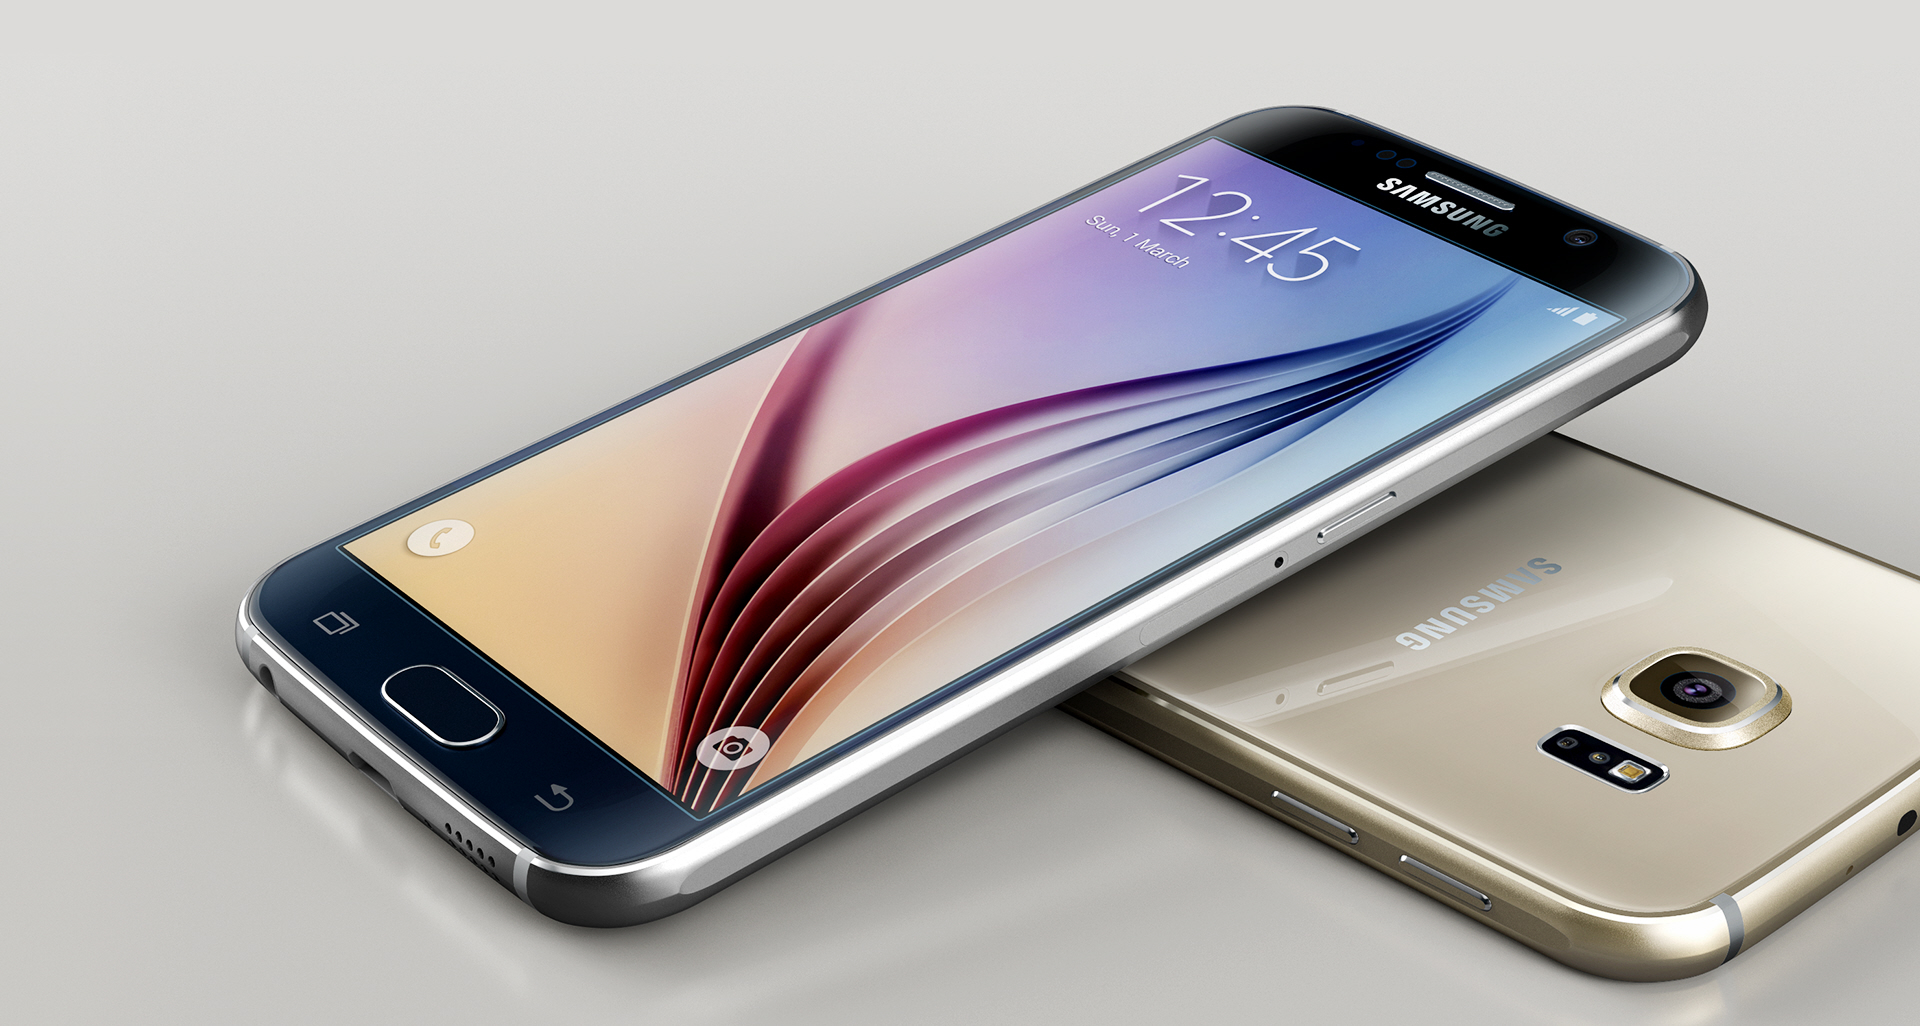 Samsung Galaxy S6: Enabling & Disabling Text Message Pop Up Display